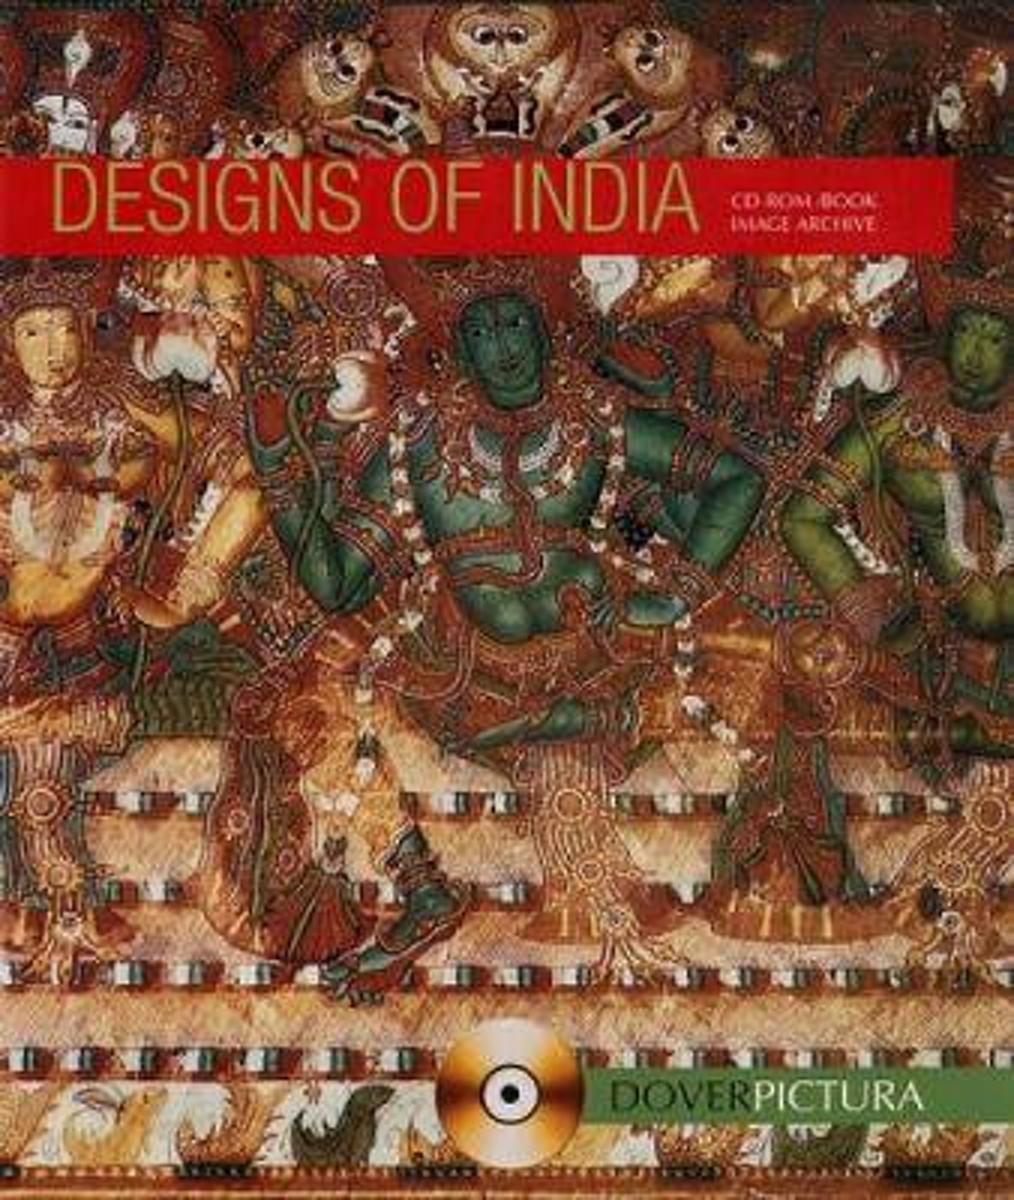 Designs from India